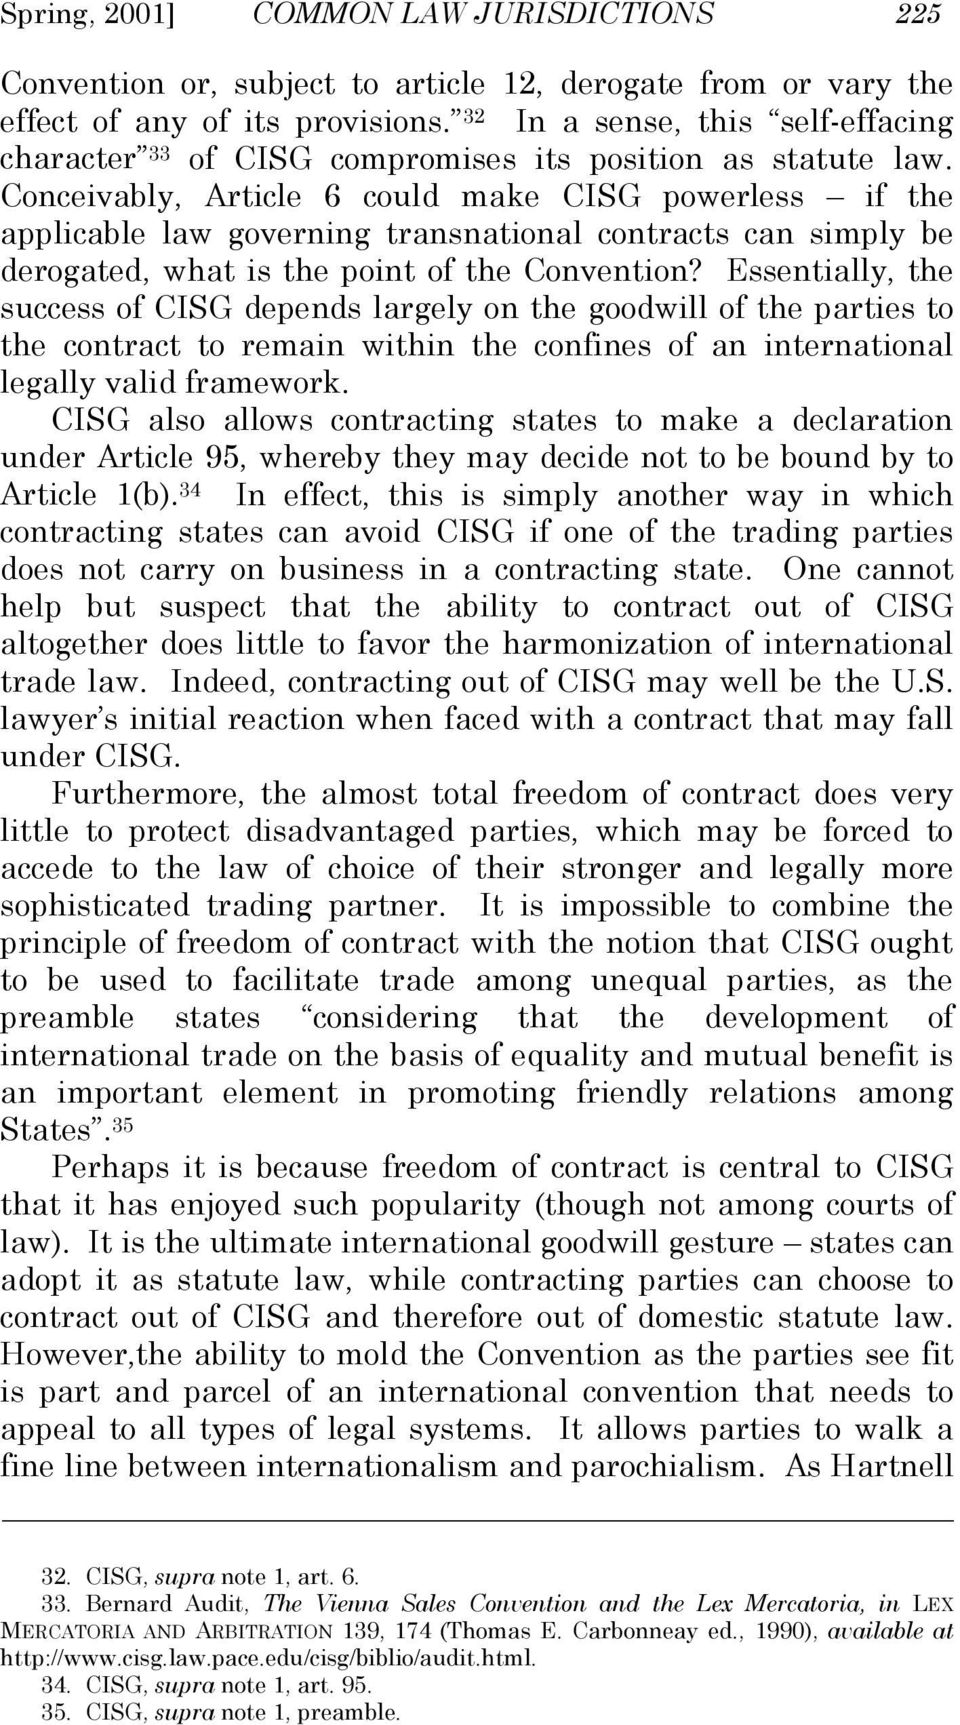 Conceivably, Article 6 could make CISG powerless if the applicable law governing transnational contracts can simply be derogated, what is the point of the Convention?